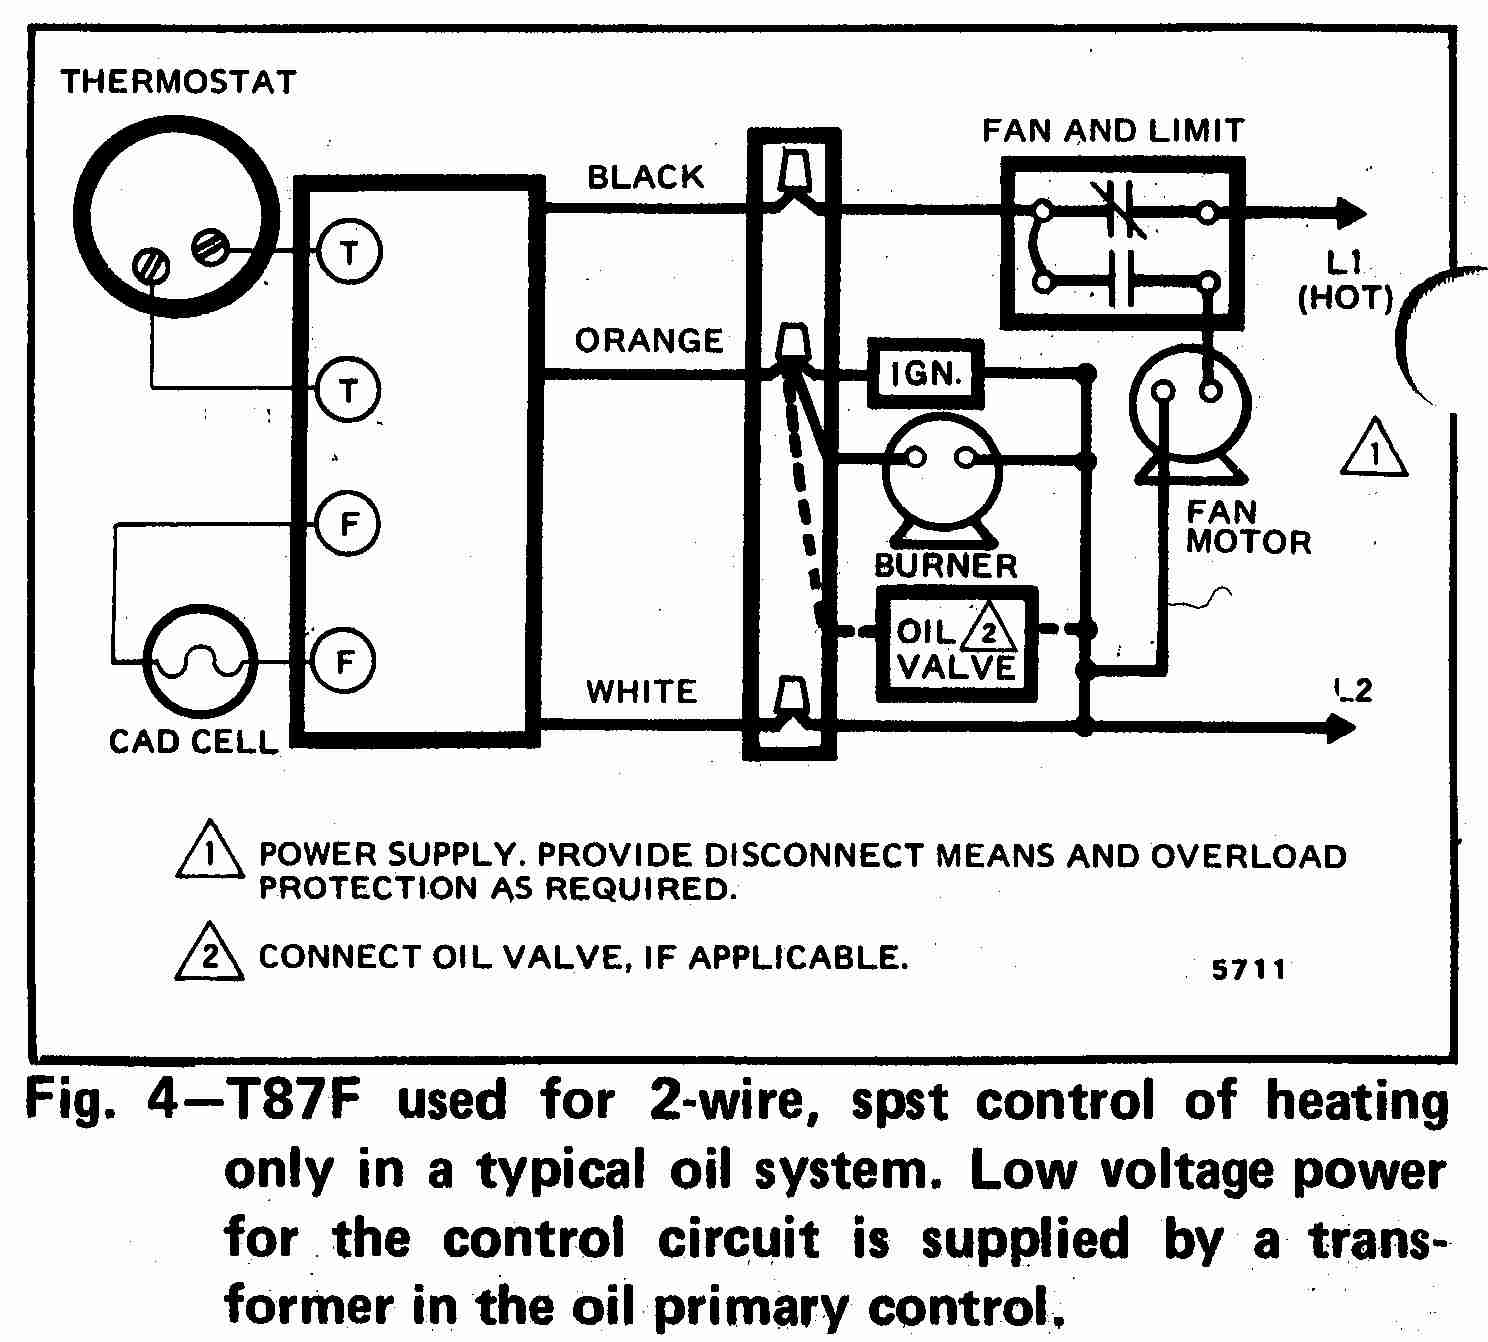 TT_T87F_0002_2W_DJF?resize=665%2C600&ssl=1 pa 28 wiring diagram wiring diagram  at readyjetset.co